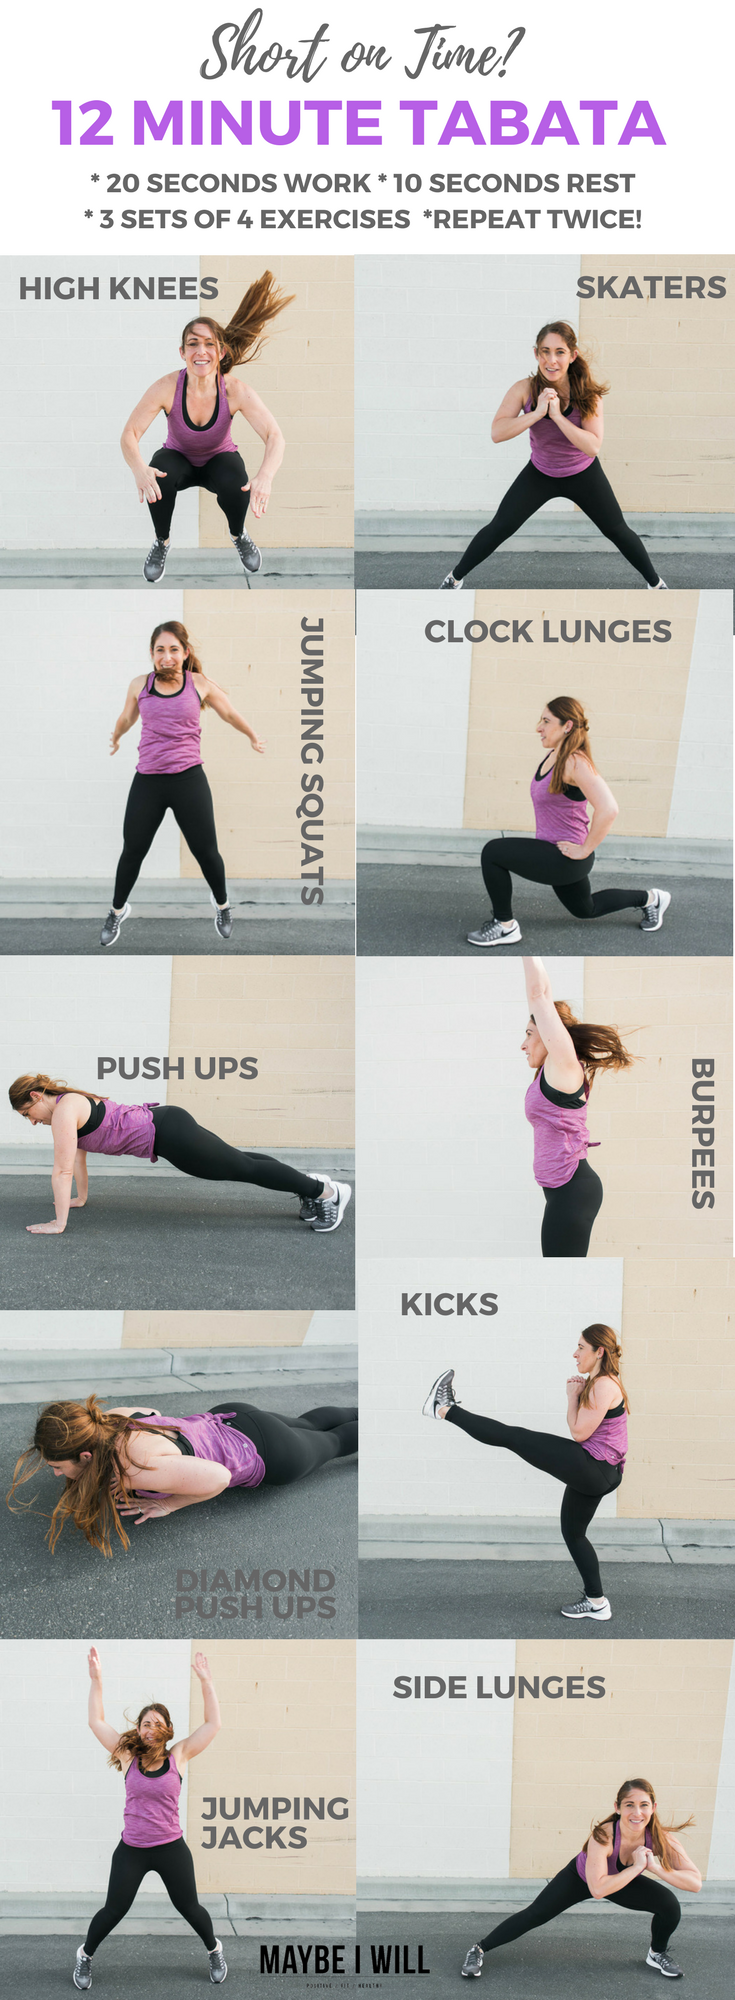 Short on Time – 12 Minute Tabata!